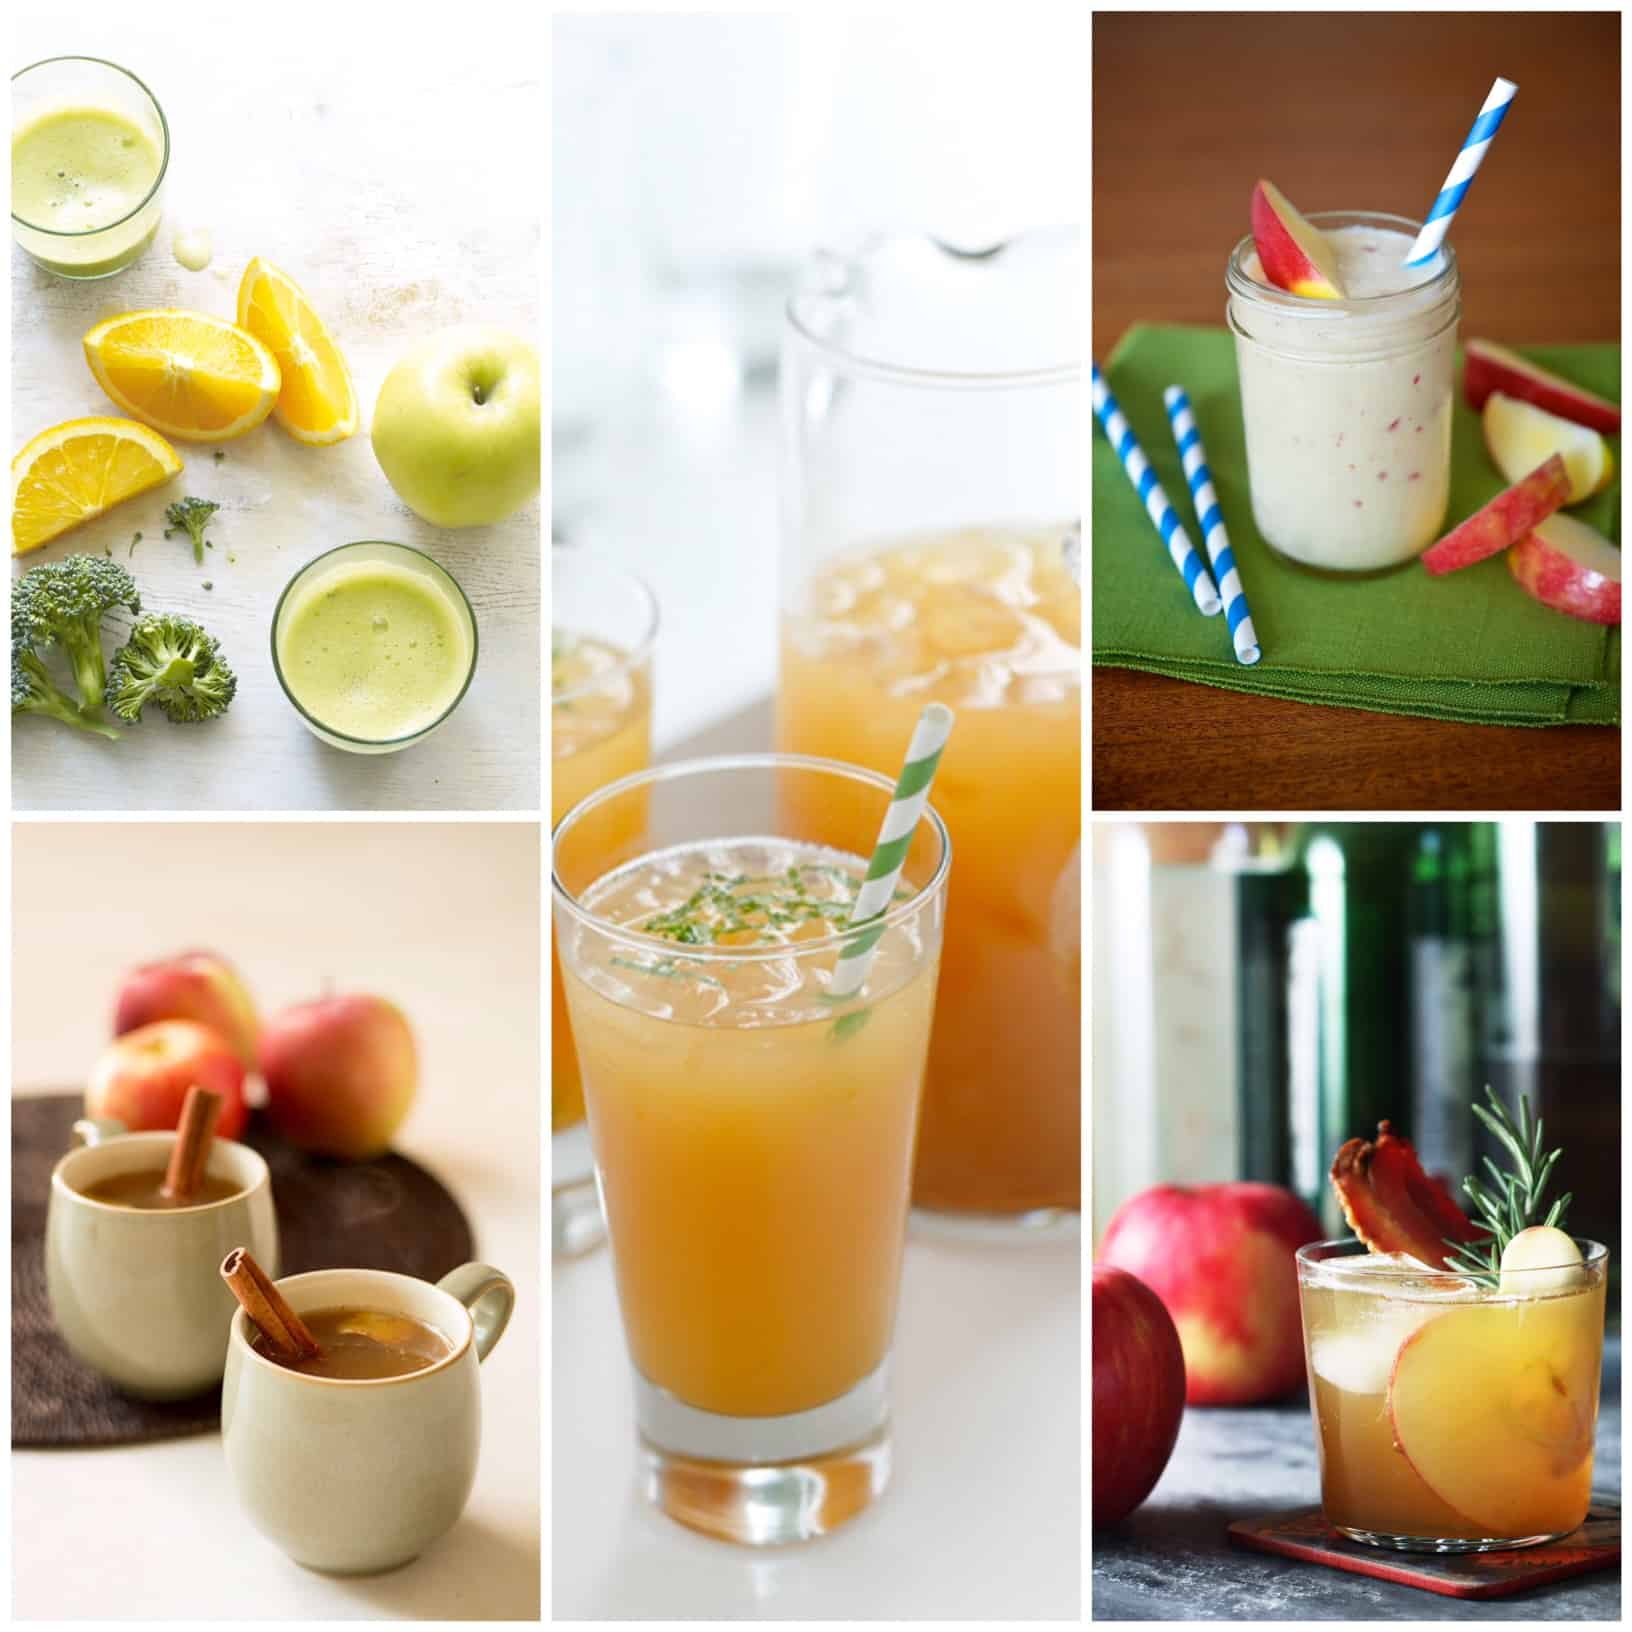 Drink-Your-Apples-ImageCollage